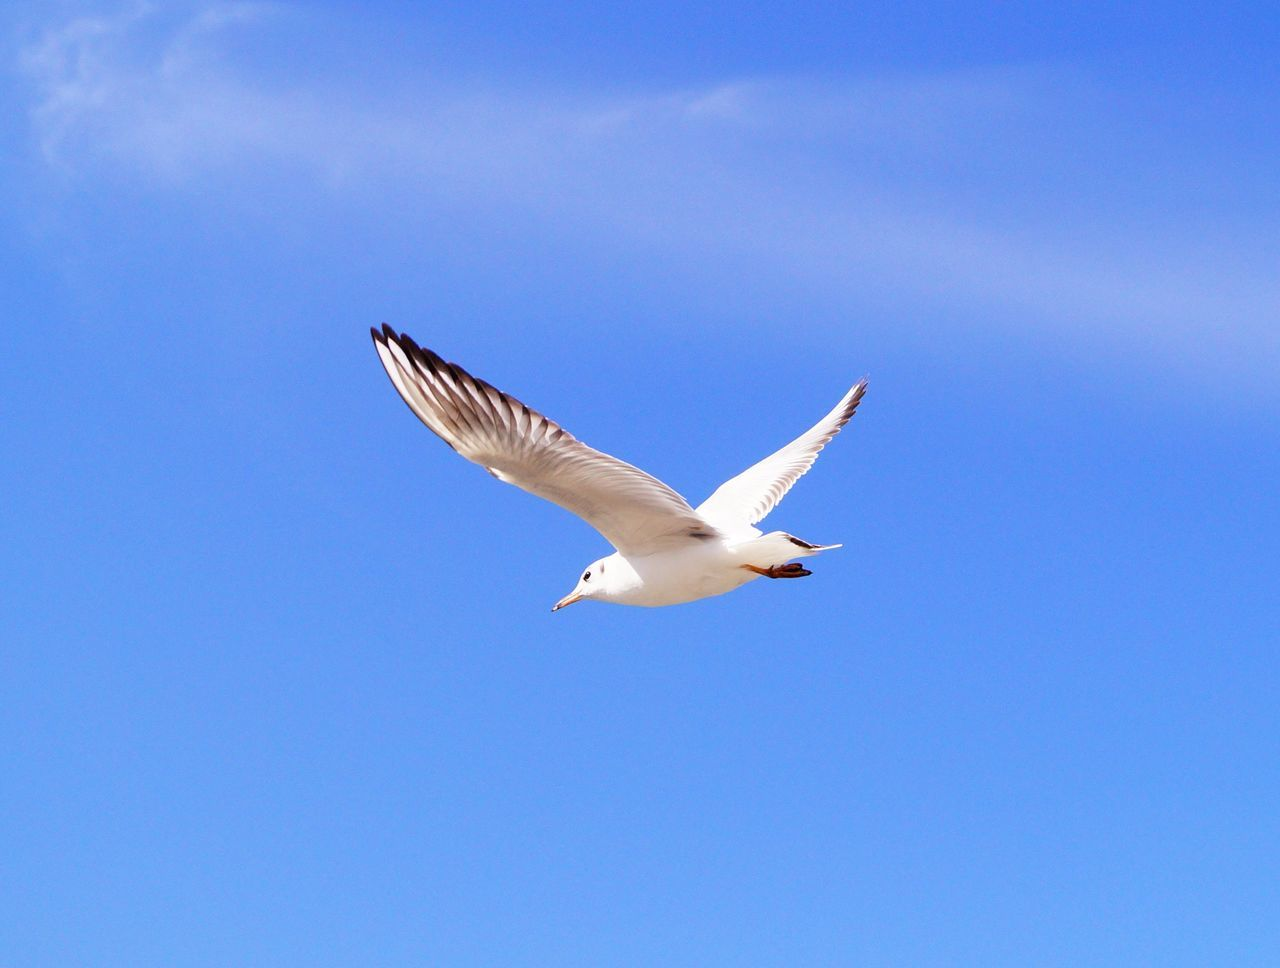 flying, bird, spread wings, one animal, animal themes, animals in the wild, low angle view, animal wildlife, mid-air, day, blue, nature, no people, seagull, outdoors, motion, clear sky, full length, sky, beauty in nature